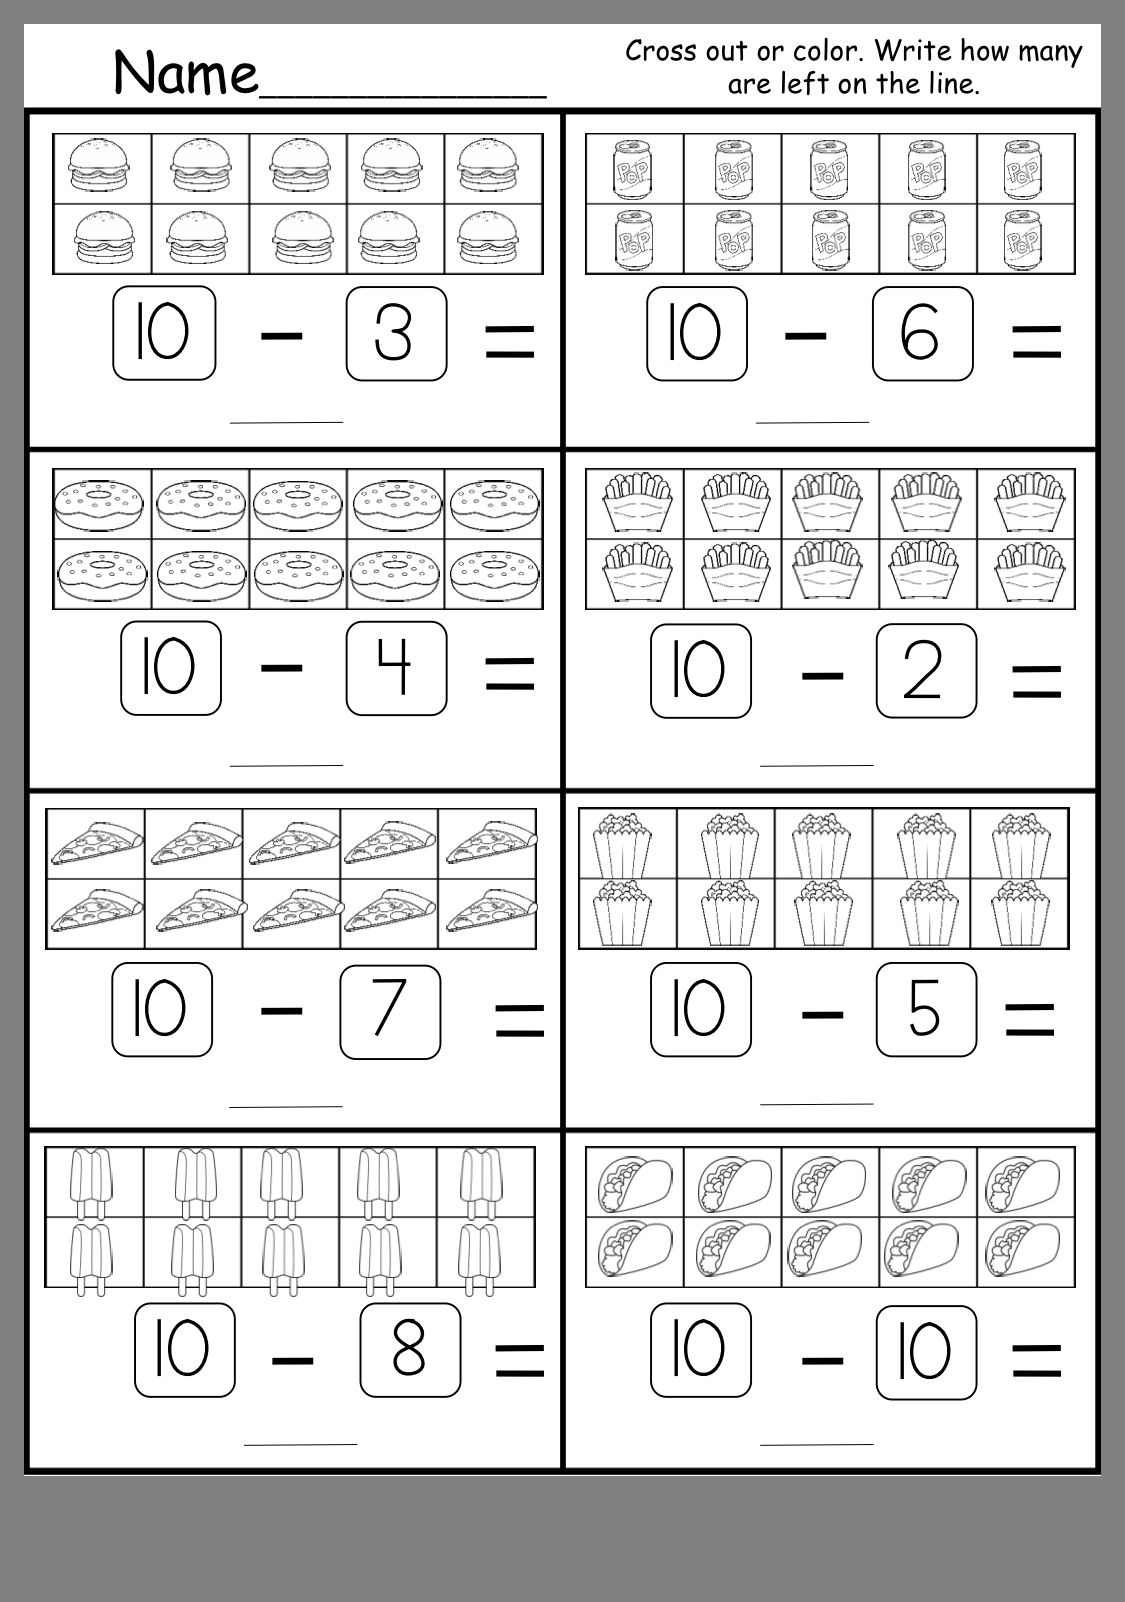 Pin By Vicky Tibbitts On School Ideas